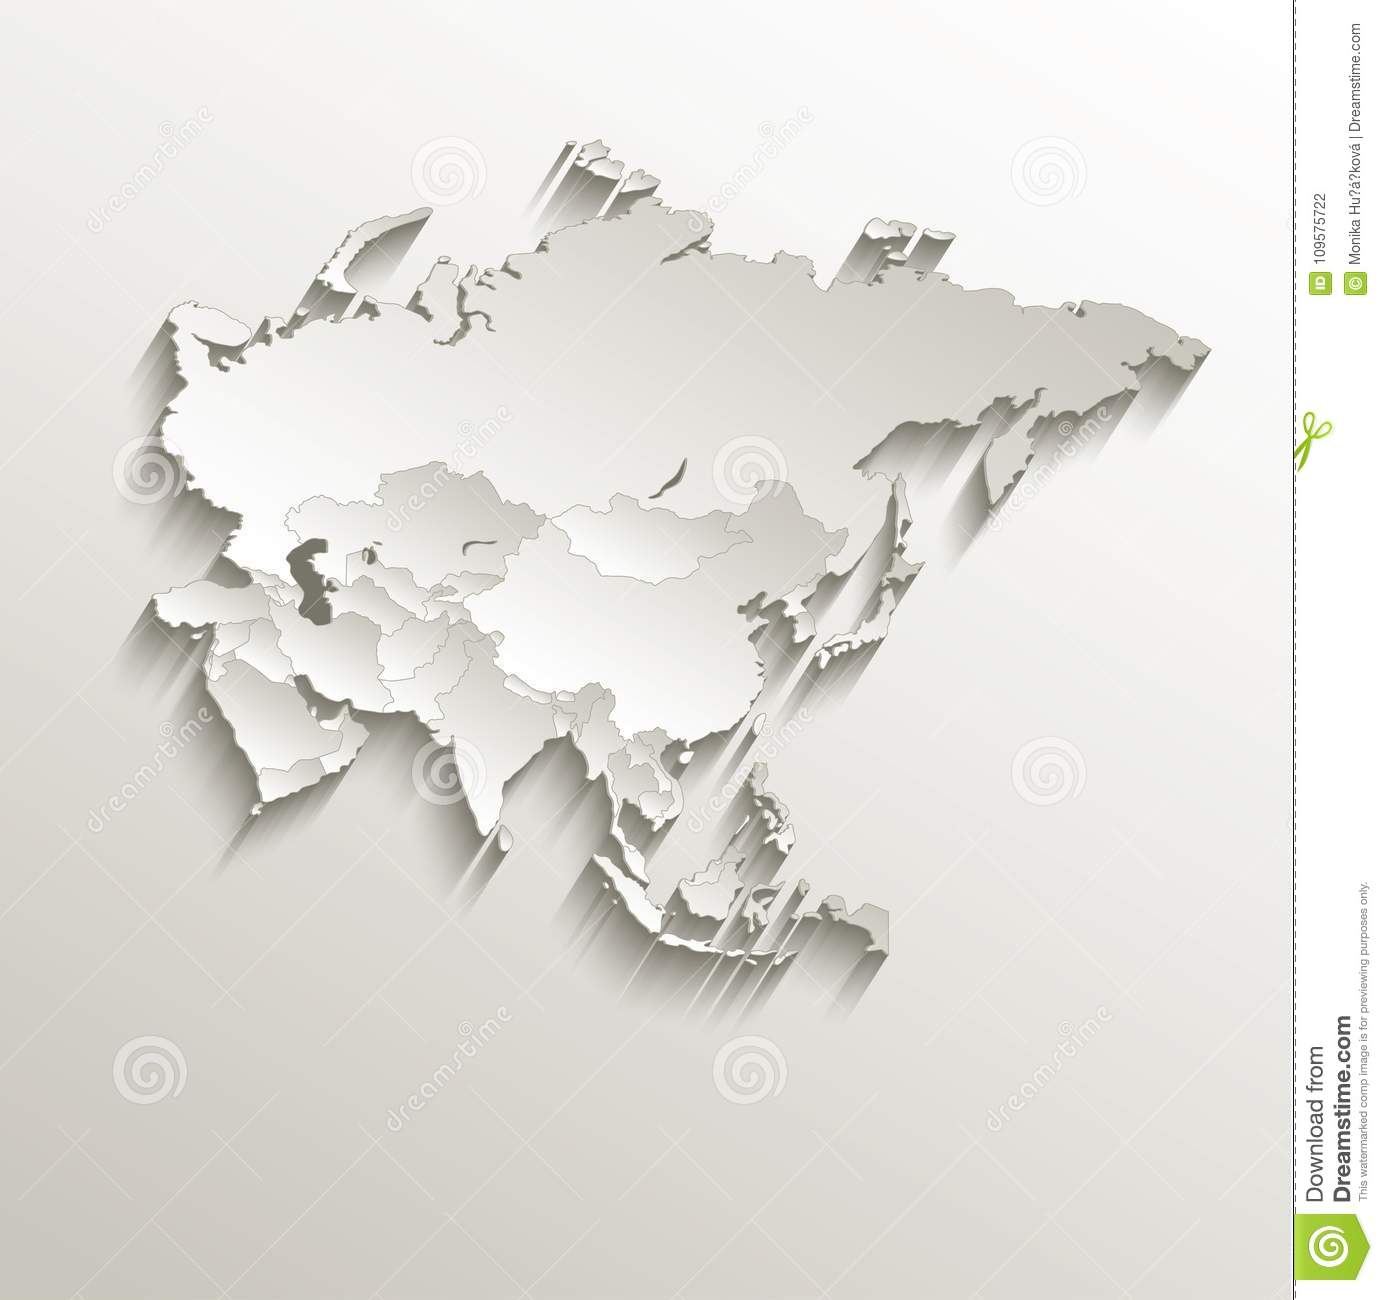 Map Of Asia Template.Asia Political Map Card Paper 3d Natural Stock Vector Illustration